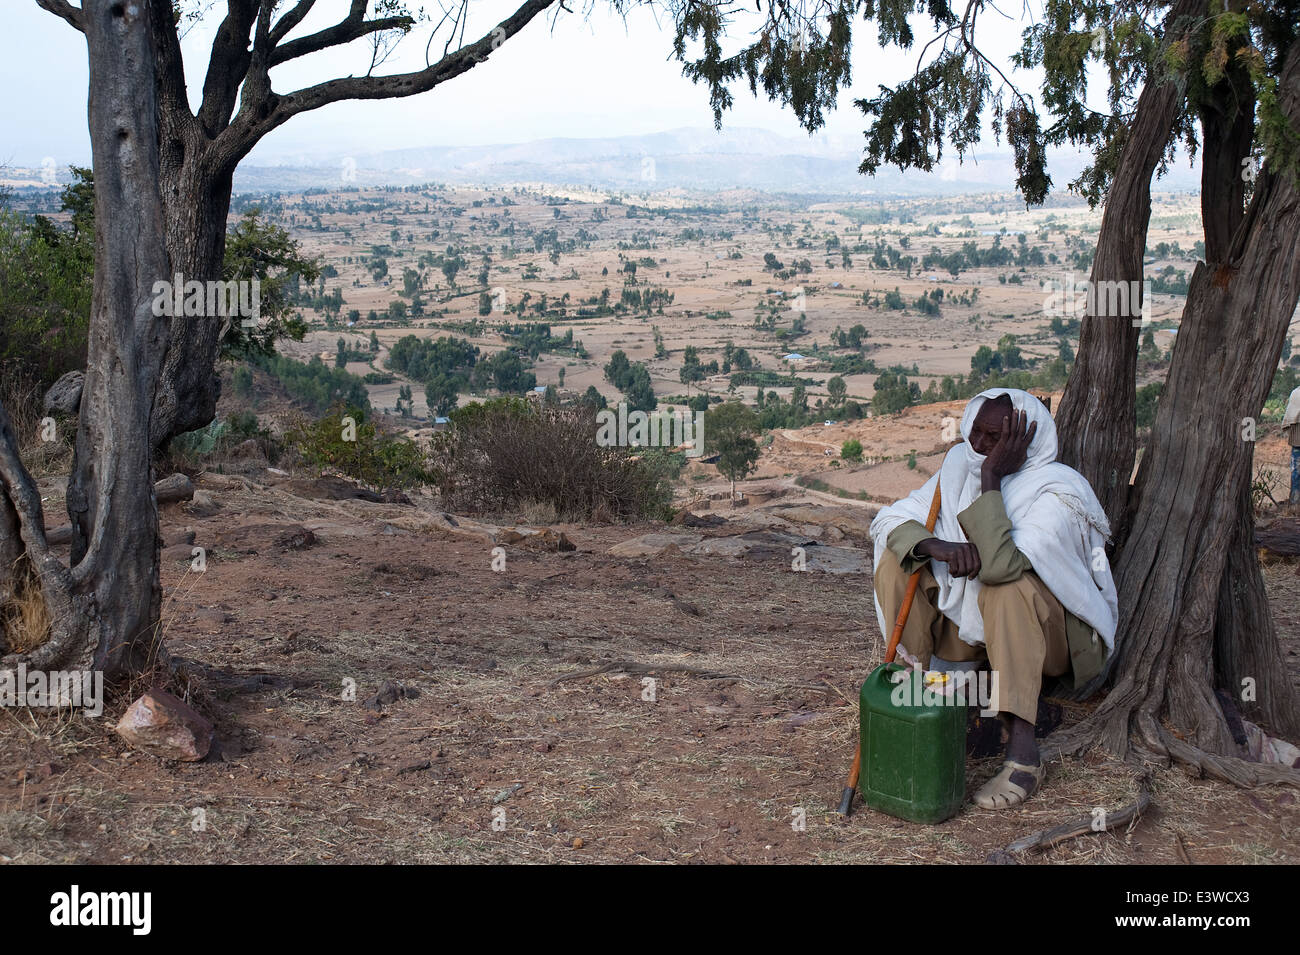 Man sitting under a tree. In the background, a landscape of hills ( Ethiopia) - Stock Image